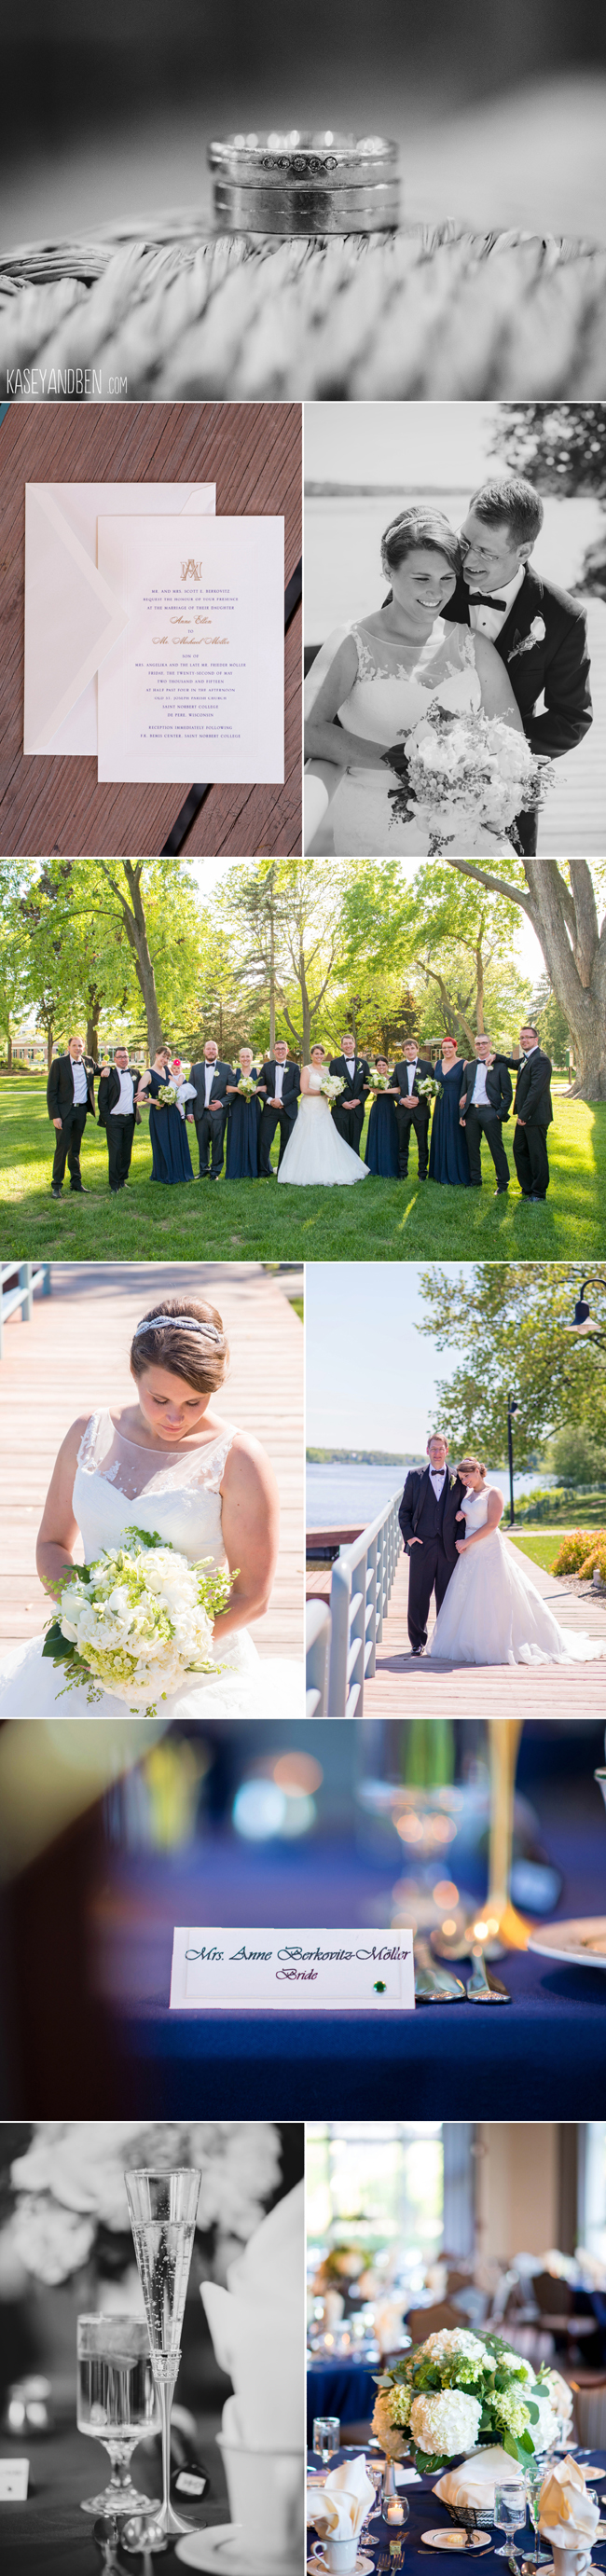 St-Norbert-Wedding-Photography-De-Pere-Wisconsin-Fox-River-Rowing-Bemis-Center-First-Look-Destination-Center-Kress-Kasey-and-Ben-Green-Bay-3